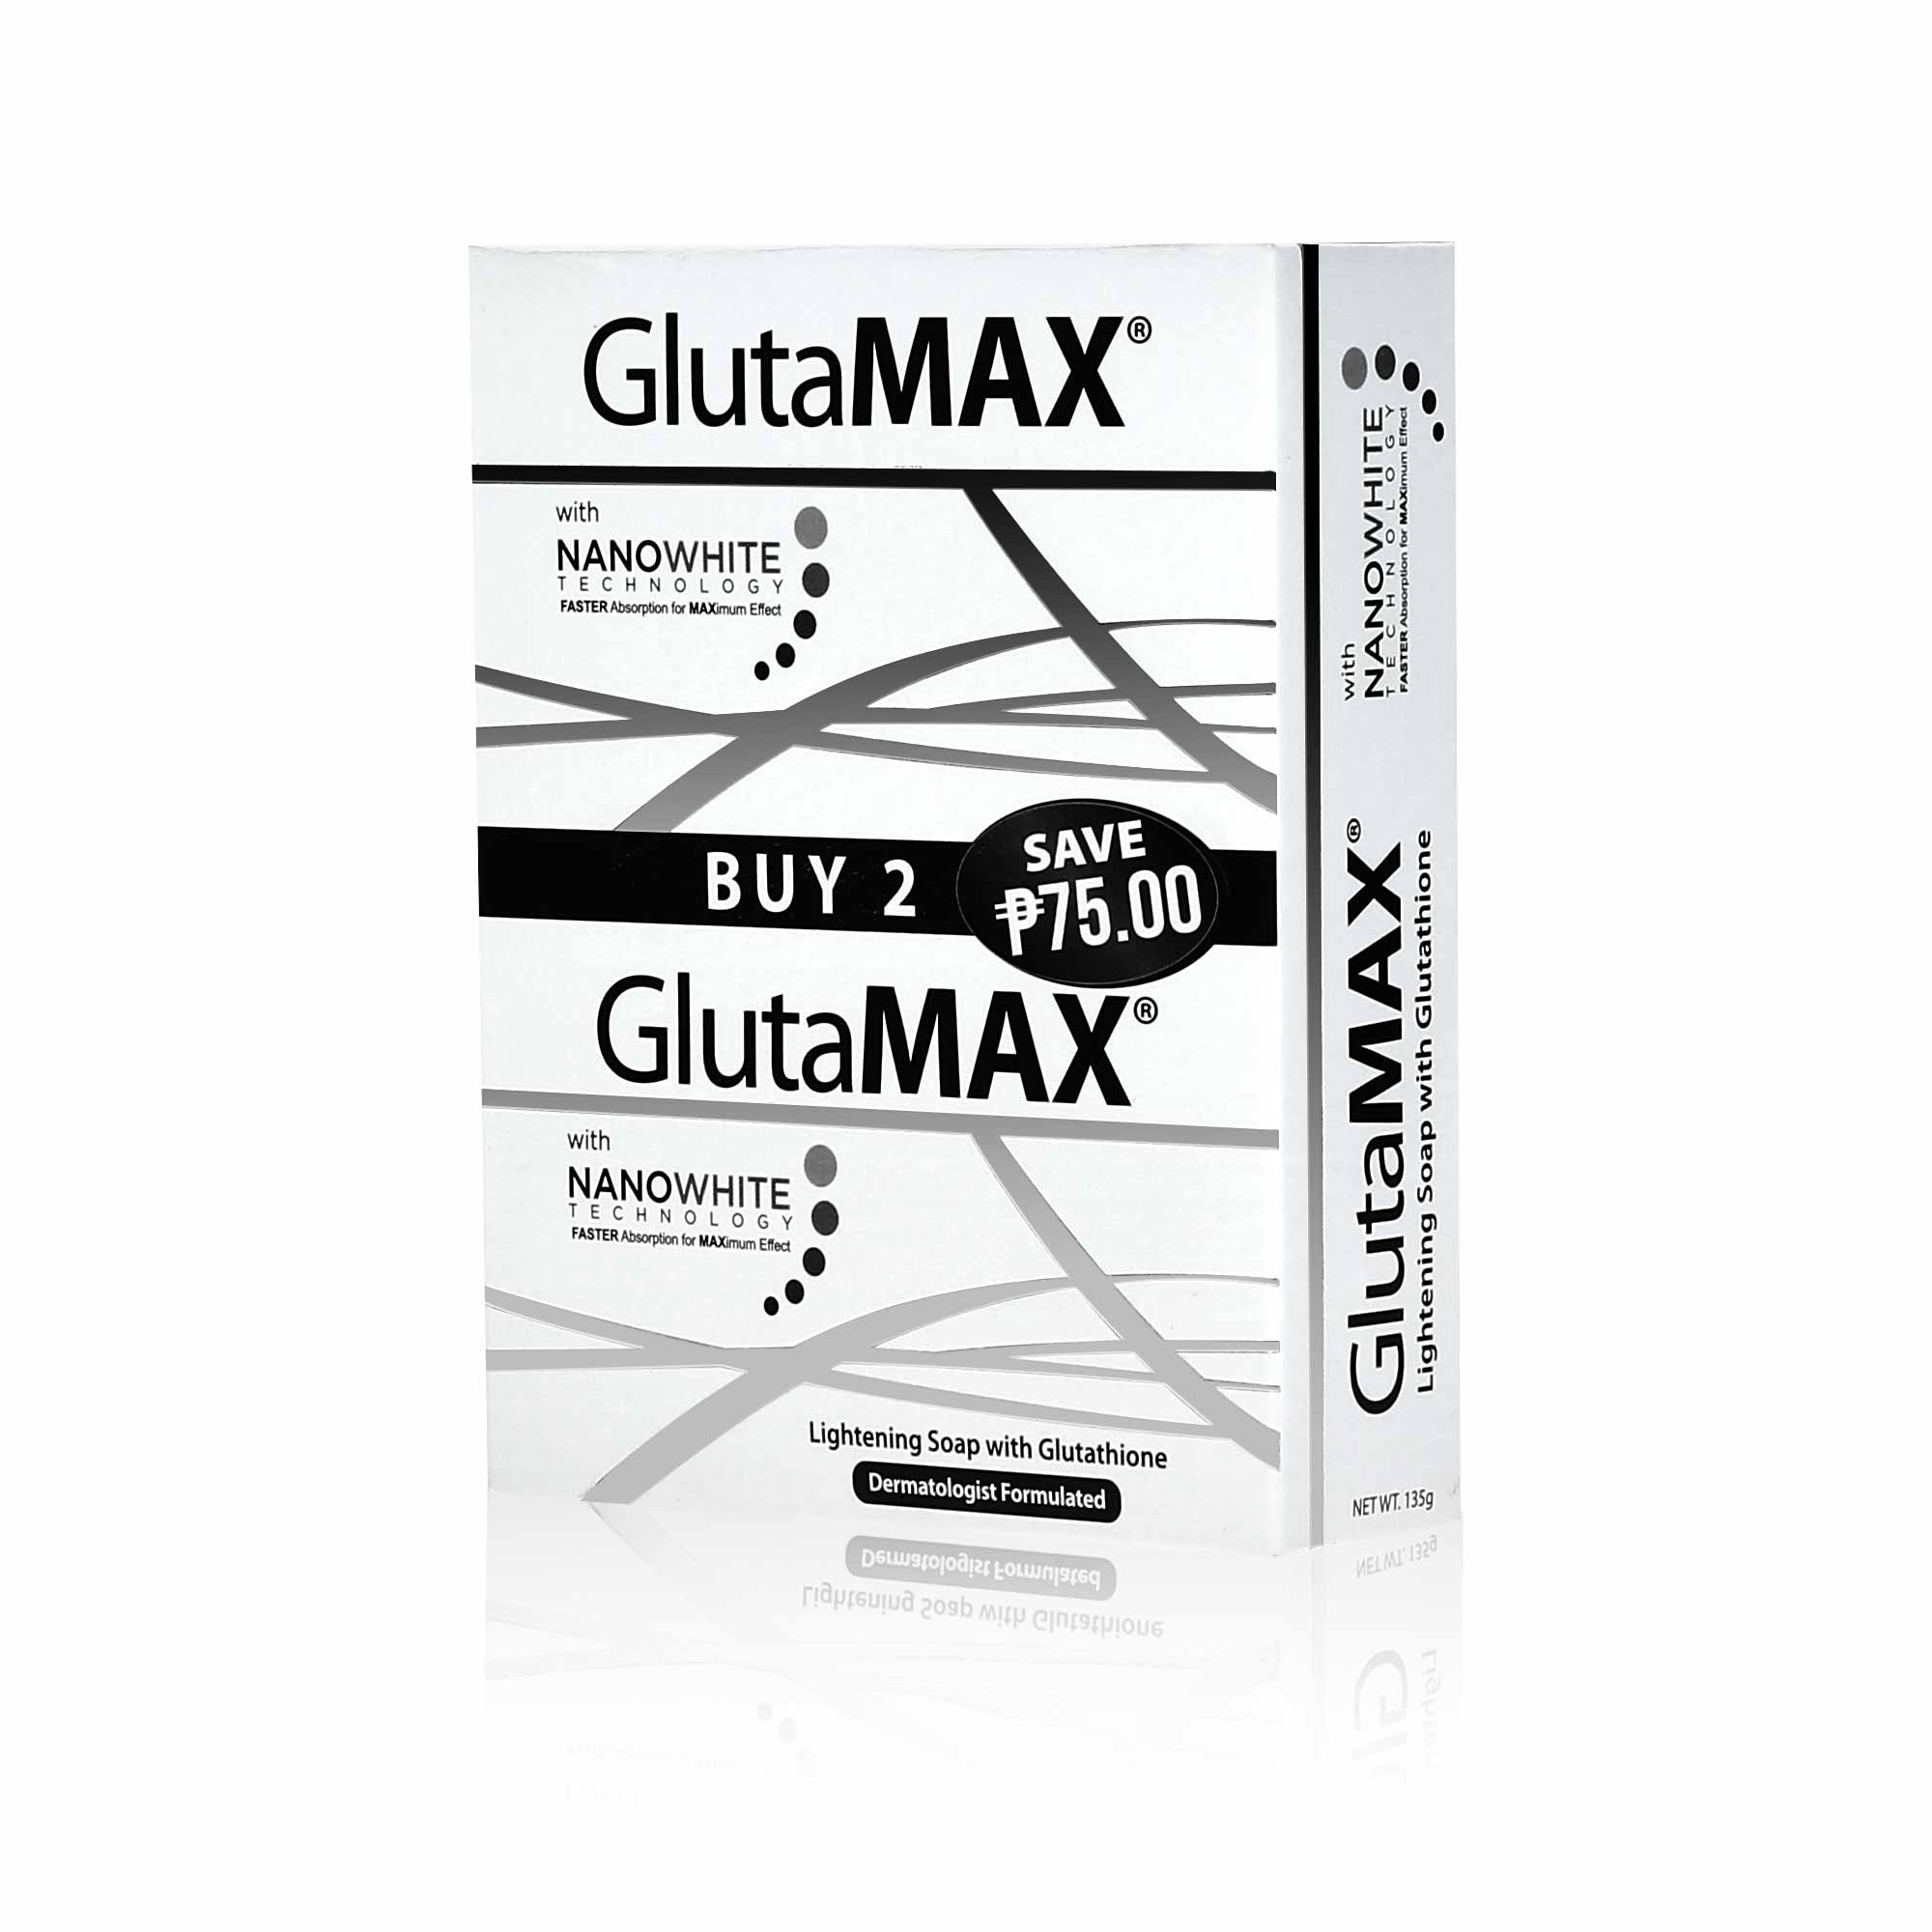 GlutaMAX Soap 135g with Nano White Technology (Duo Pack)